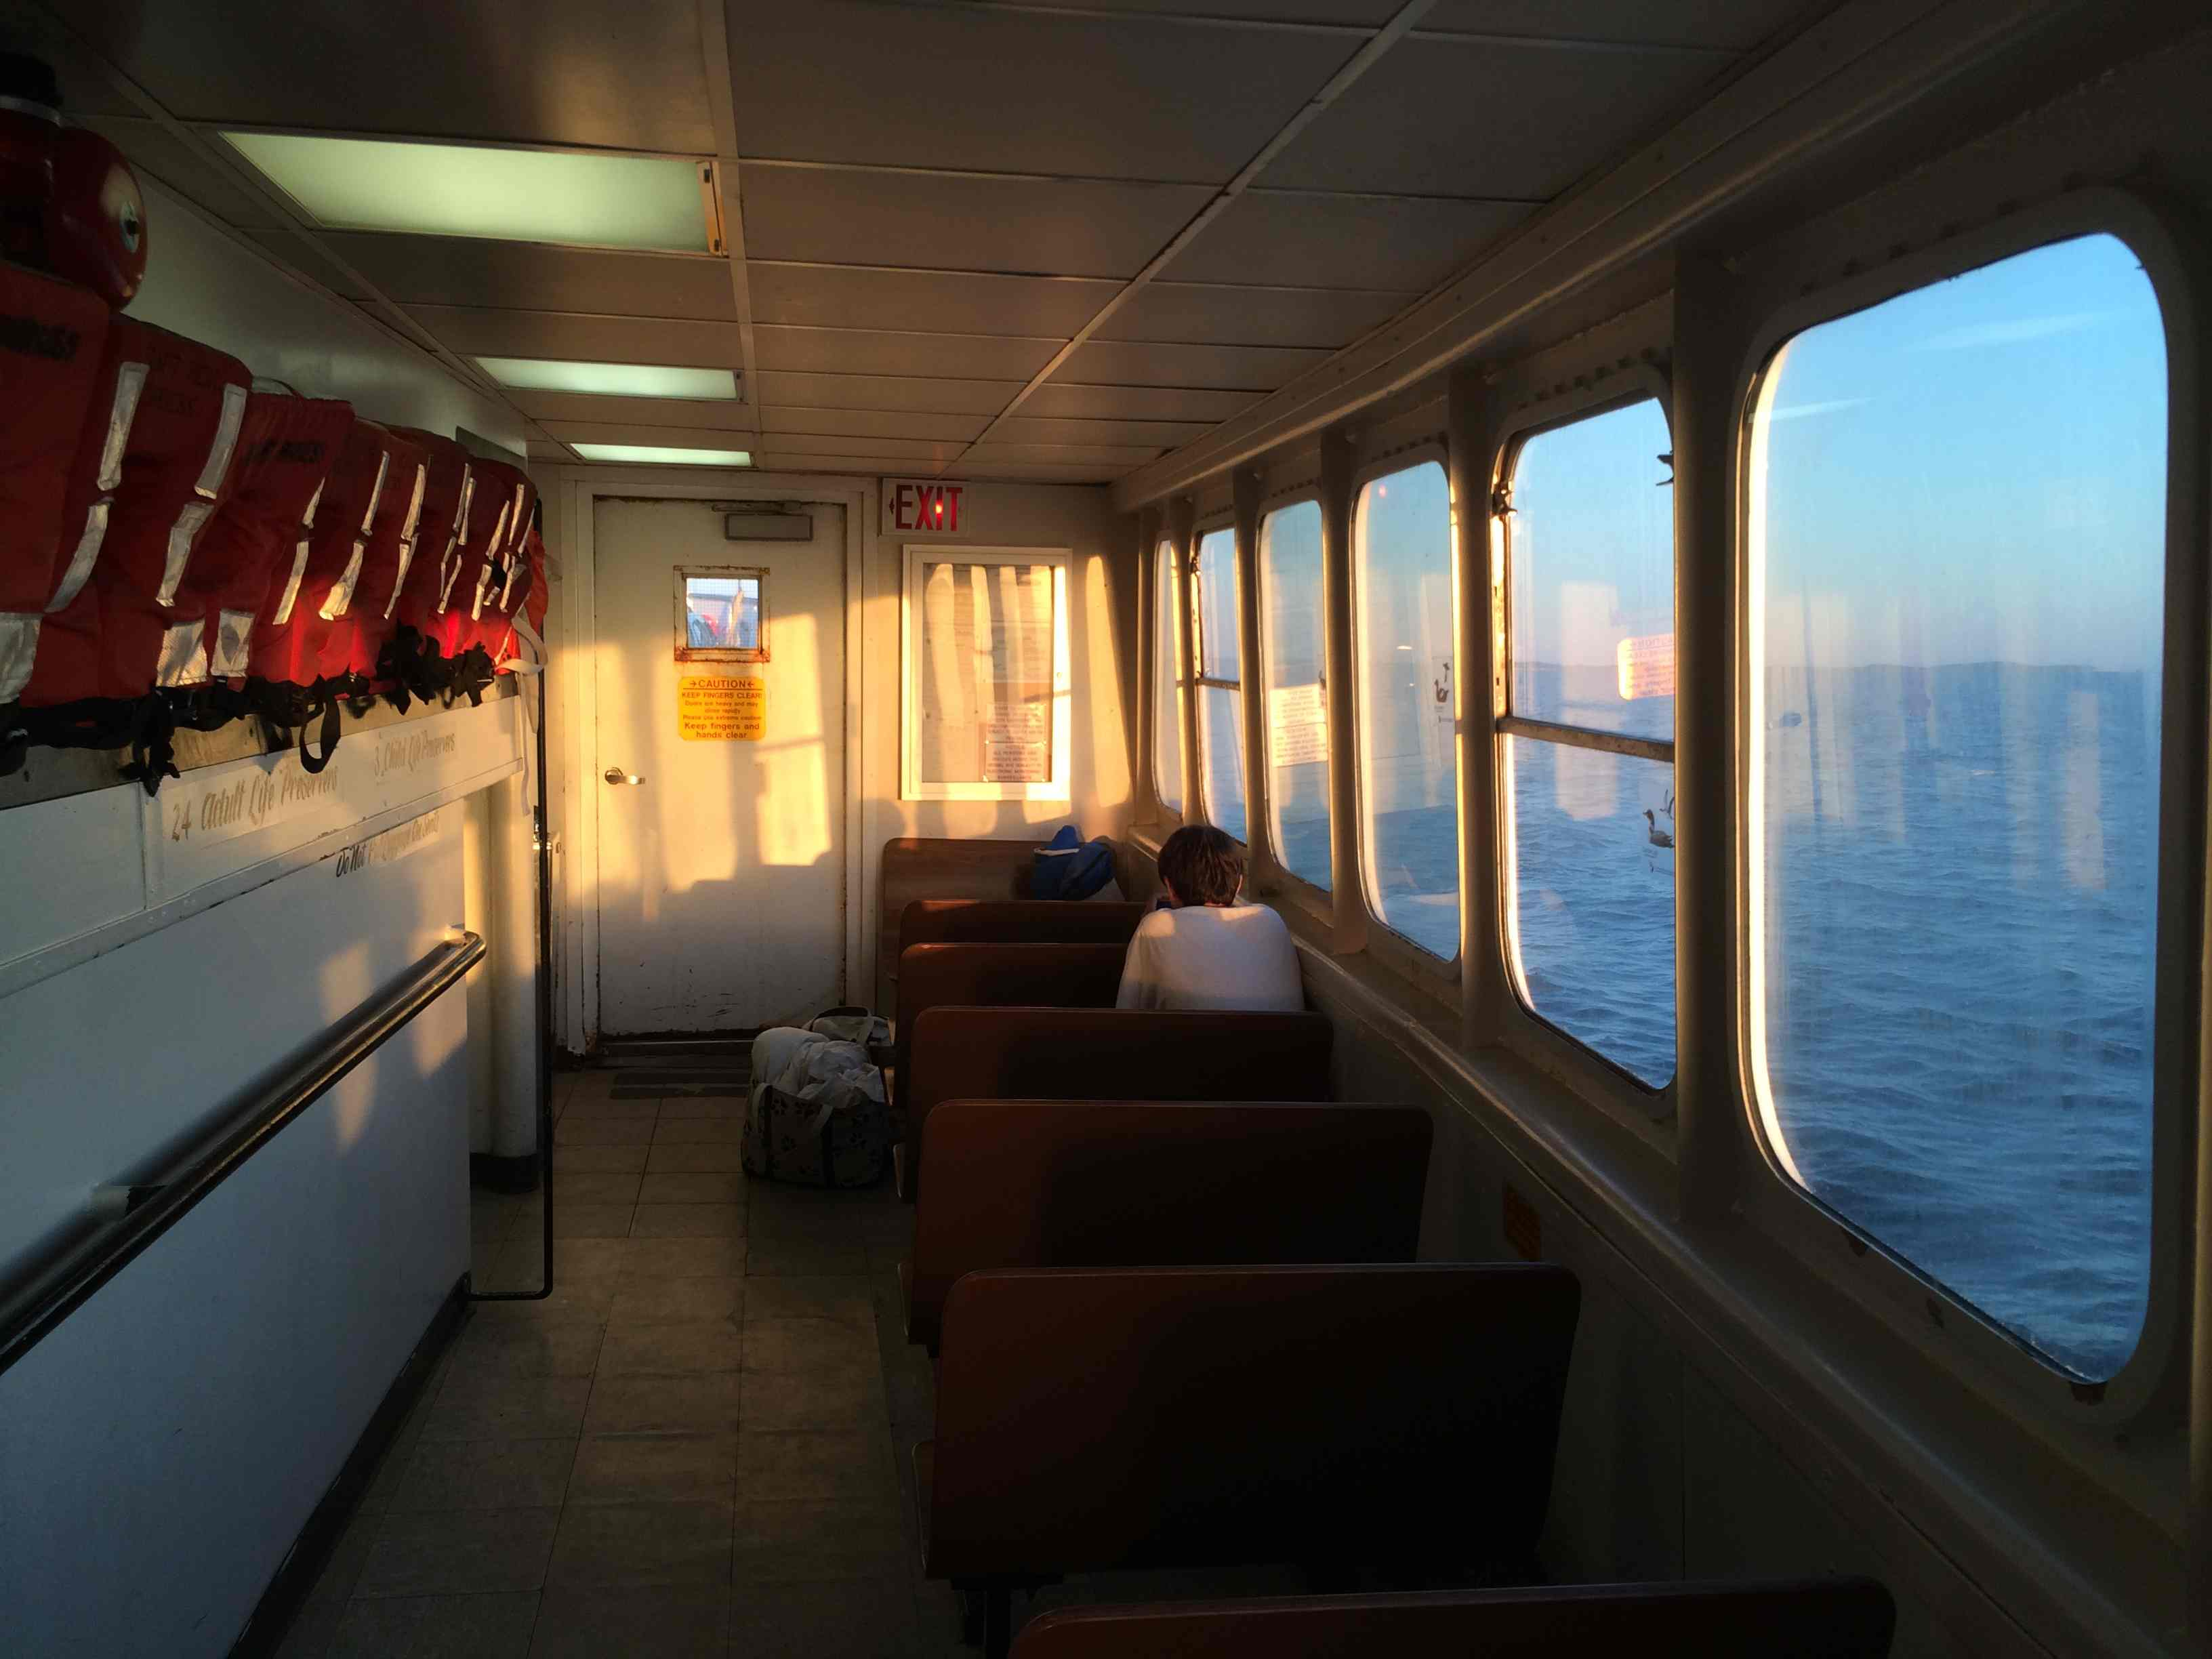 Jack on the almost empty ferry headed to North Haven. He was too busy reading to notice the light. Rhapsodies about the setting sun don't start happening until you are older anyway.